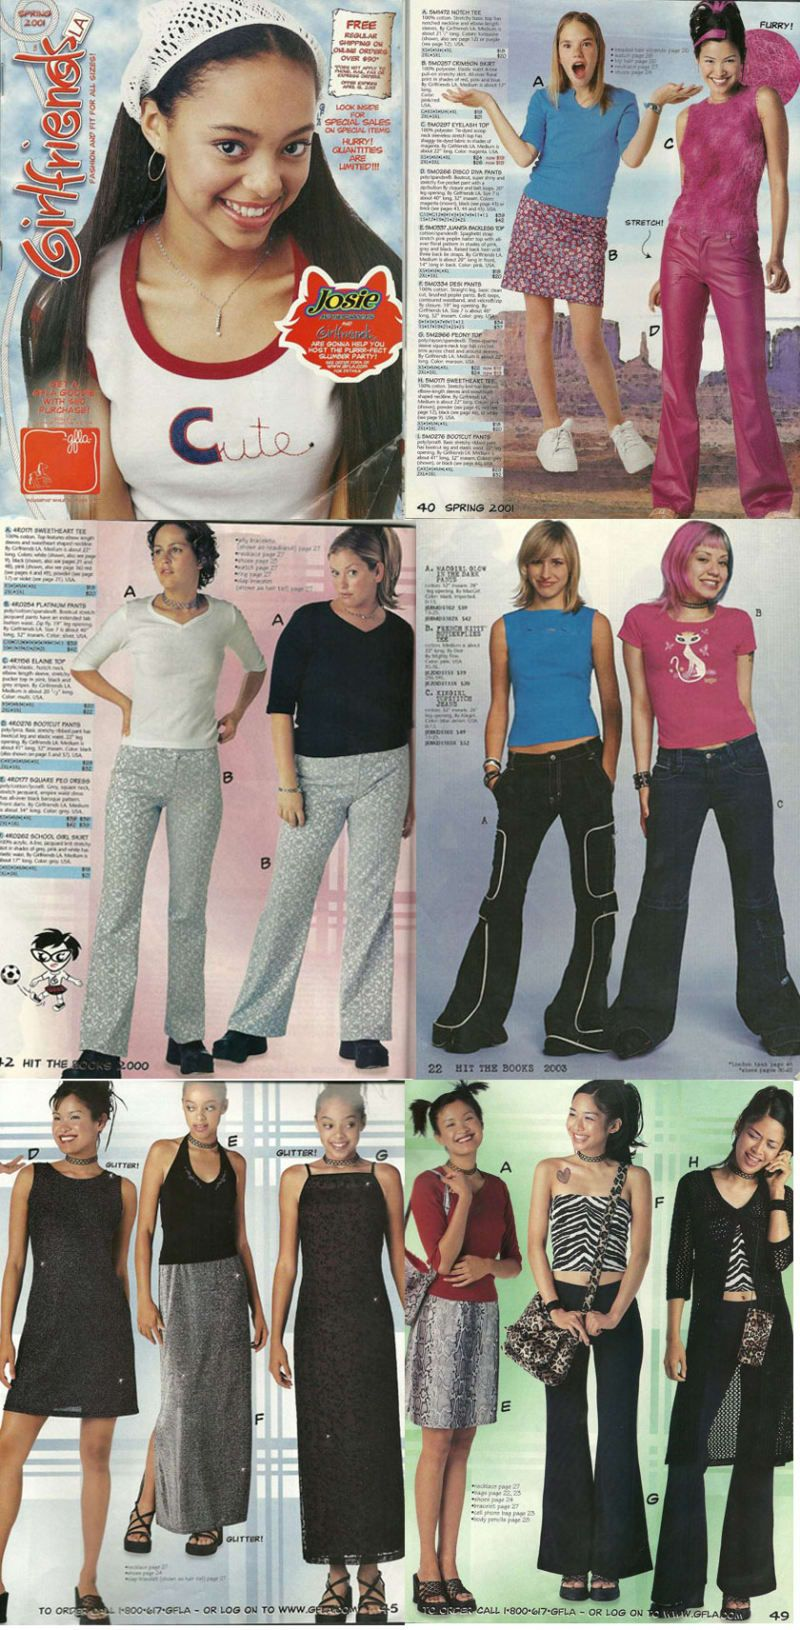 7b5e2c0f56a One of the cheesier trashier catalogs. Your mom haaaaated this one.